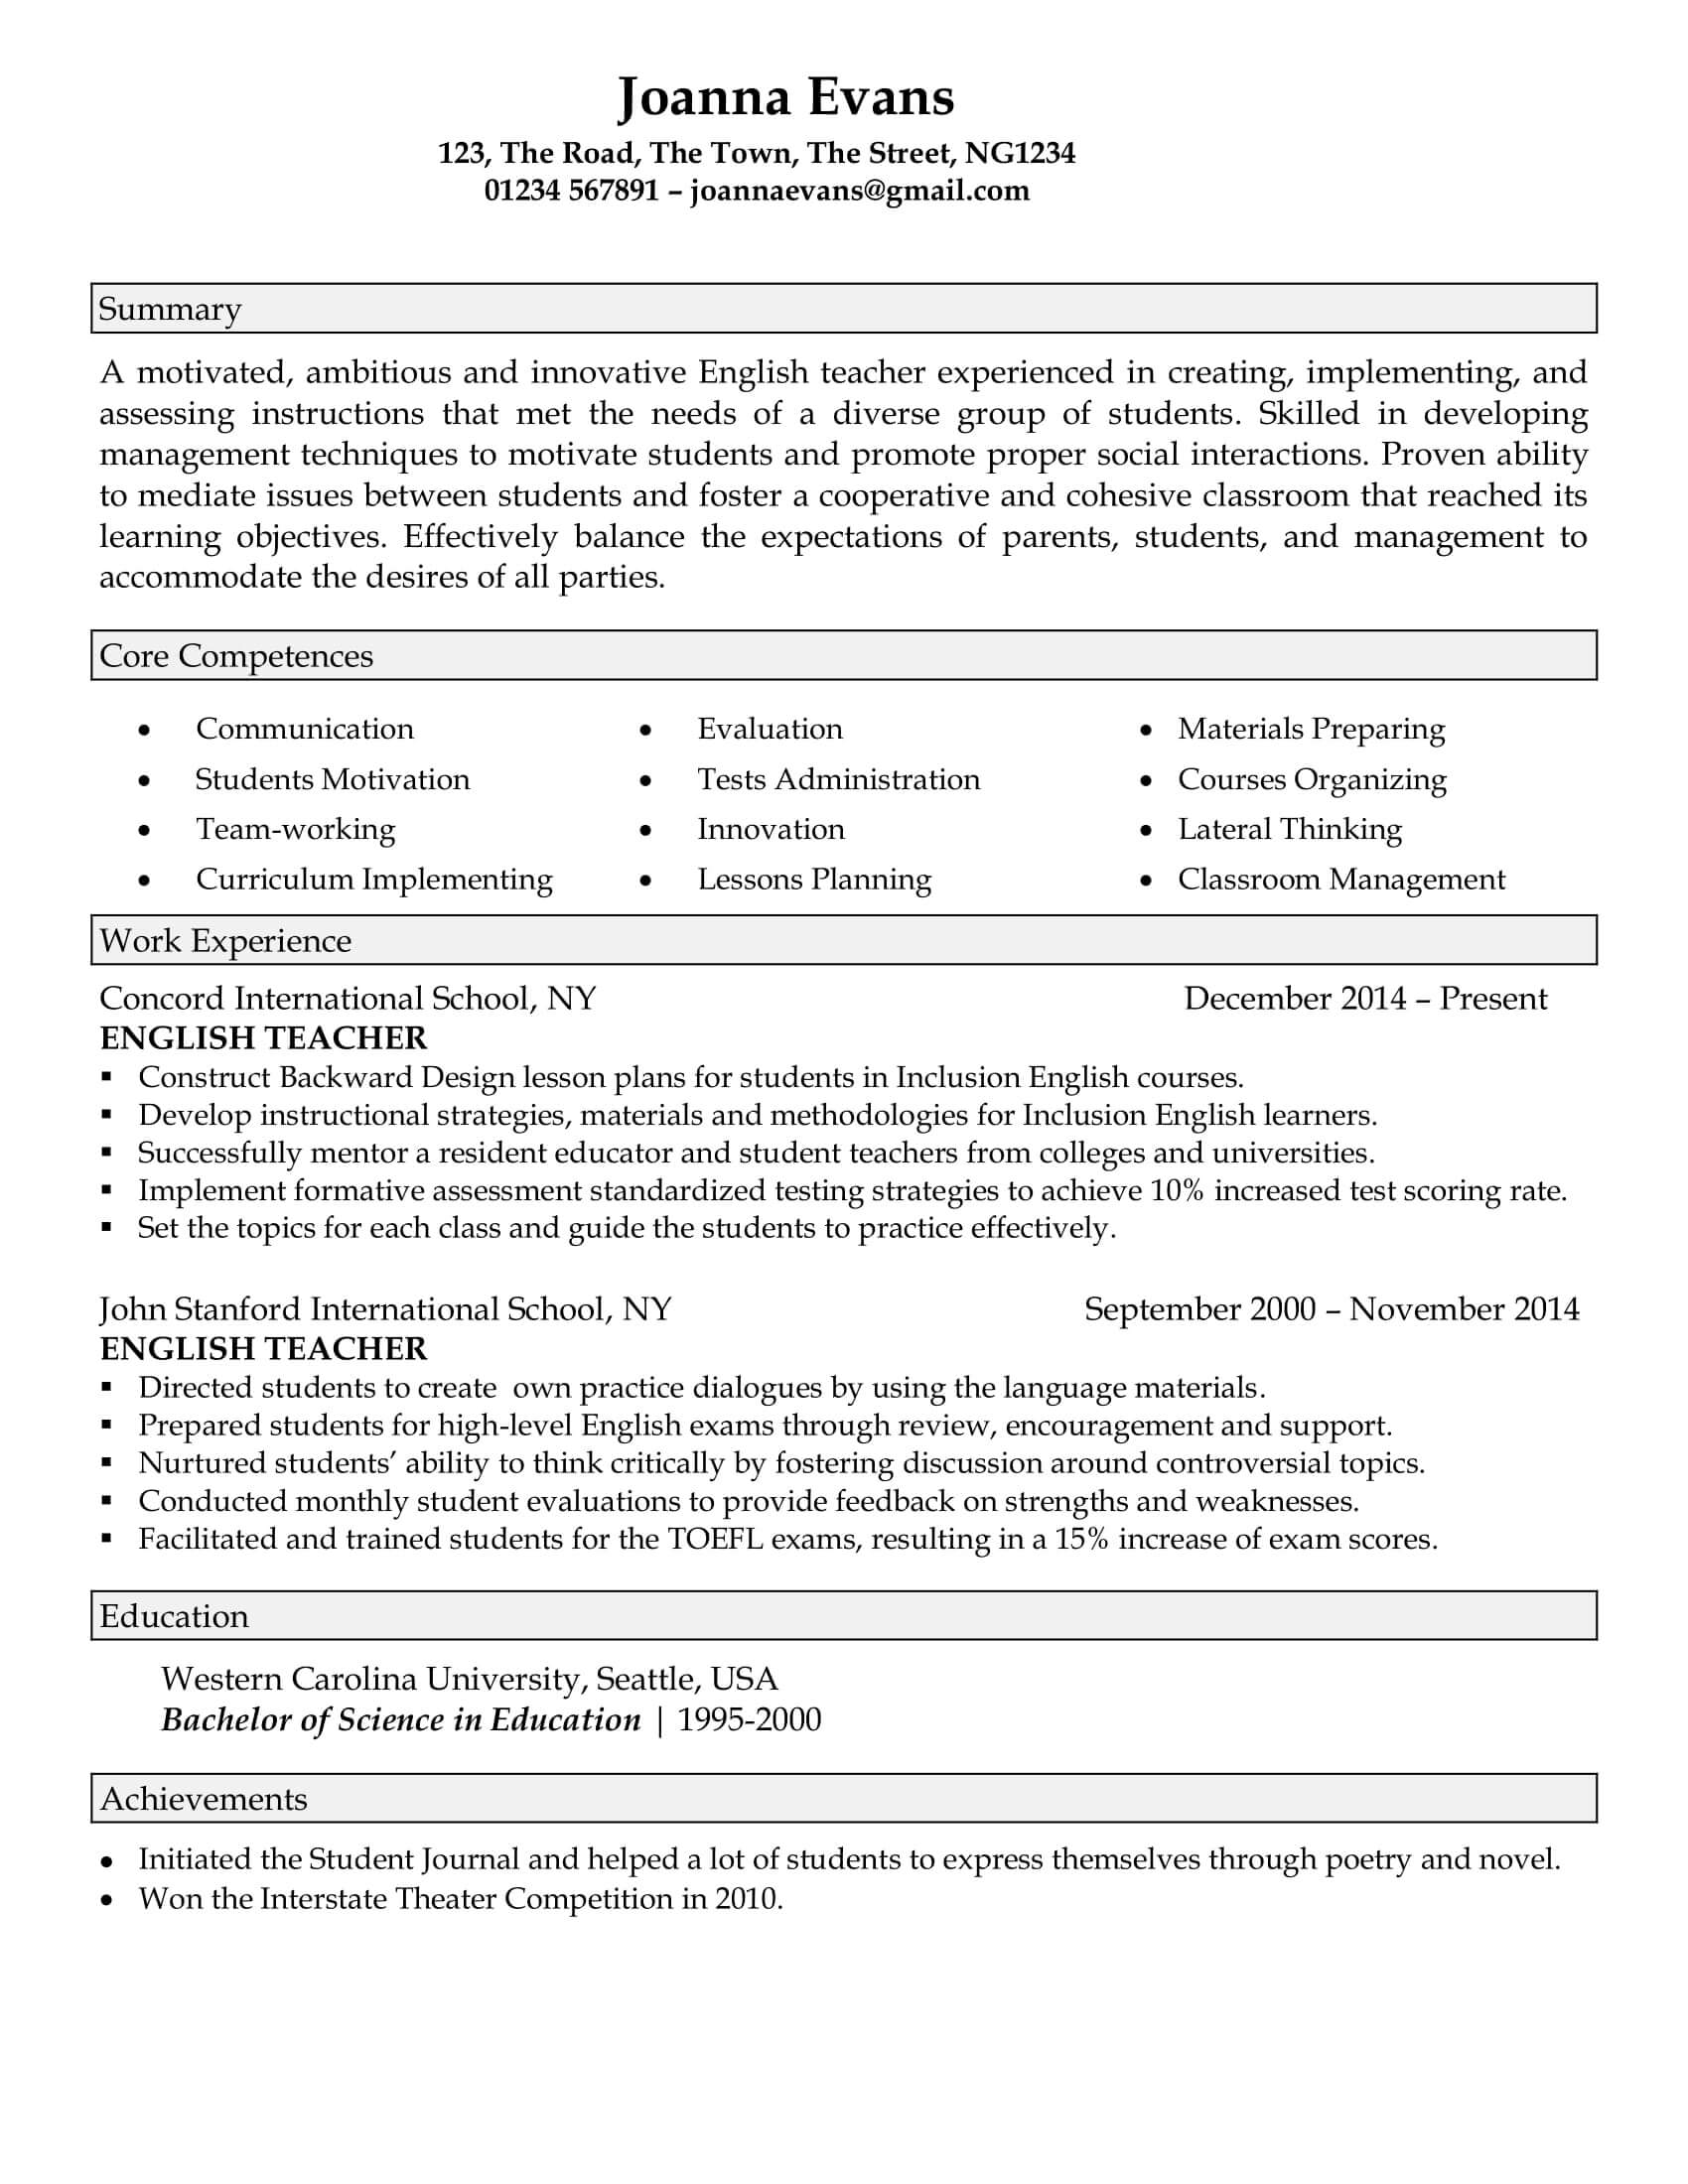 Resume Samples For Professionals Careersbooster The Best Resume Writing Service